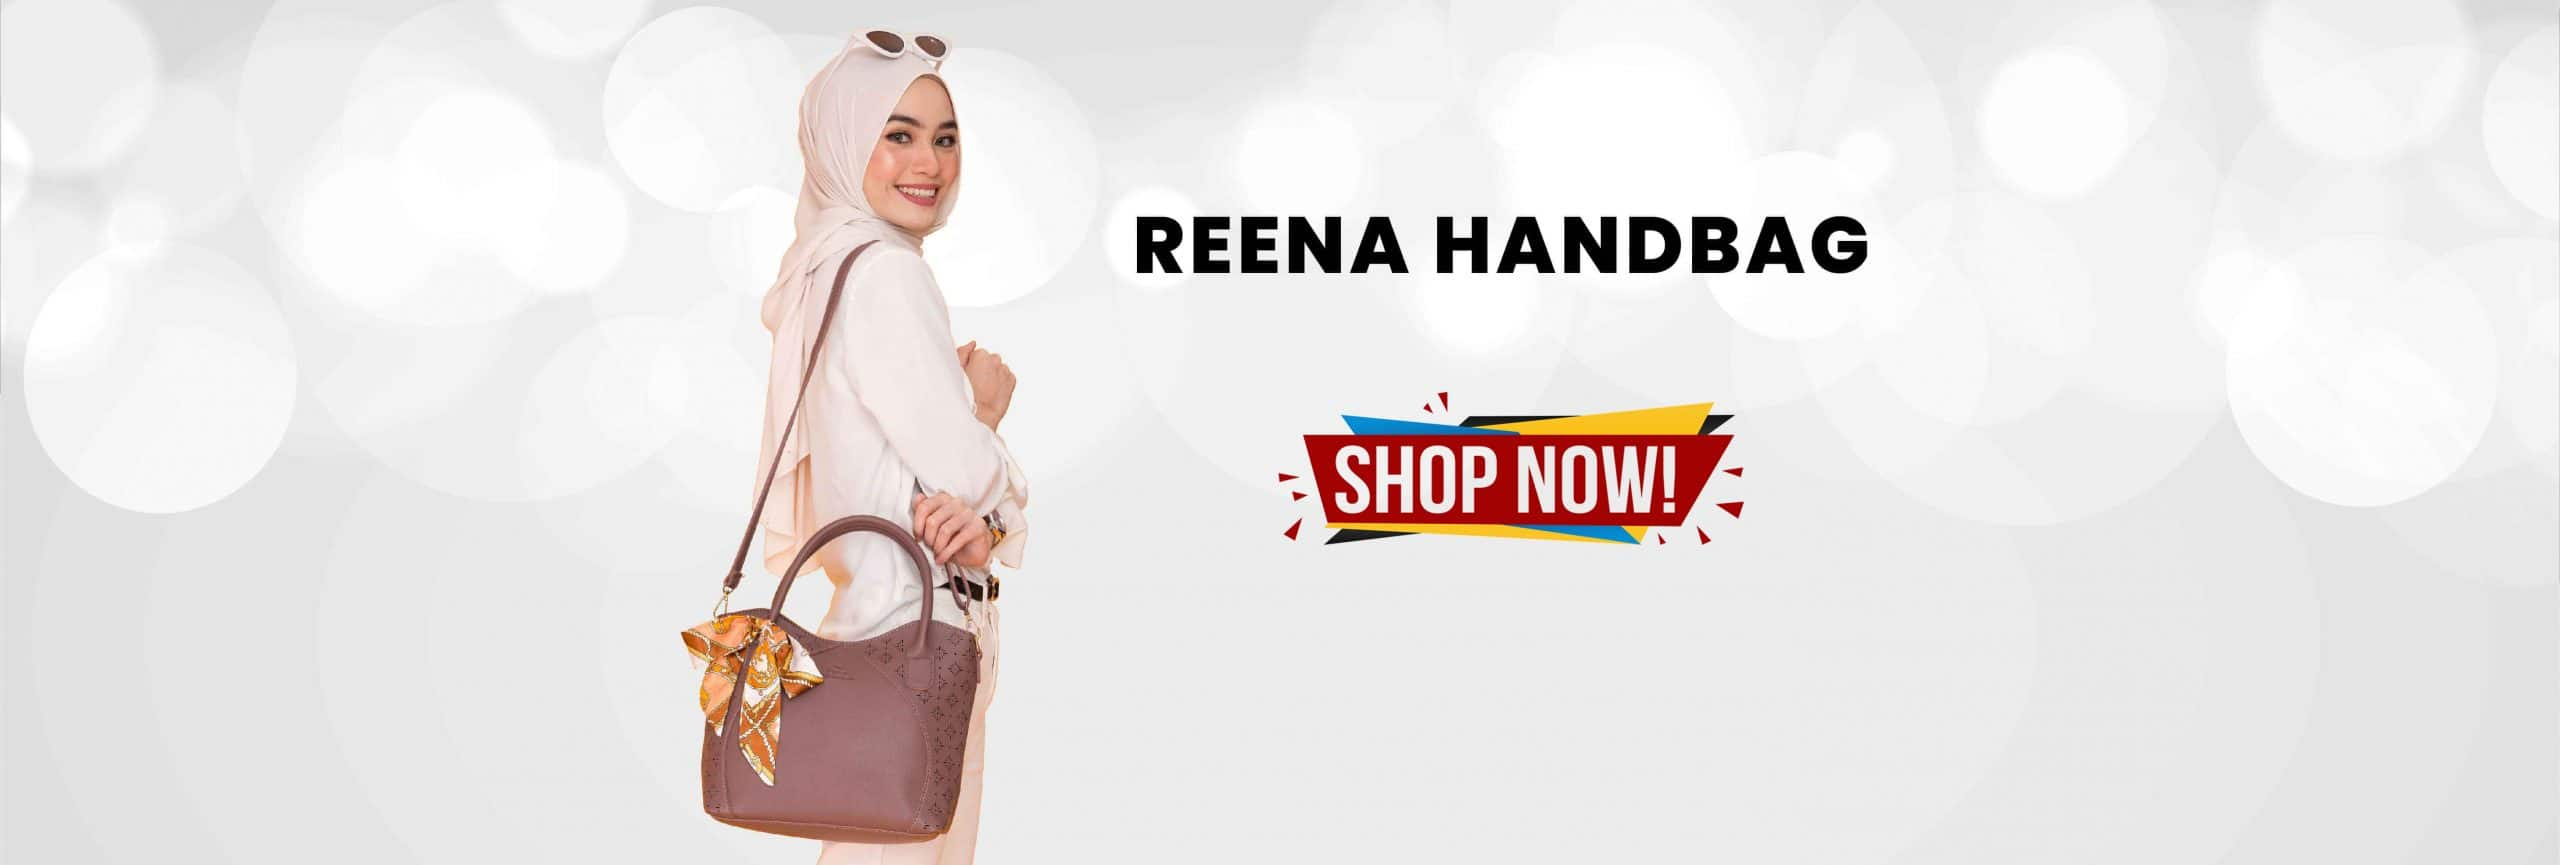 Banner_ReenaHandbag_shop_now